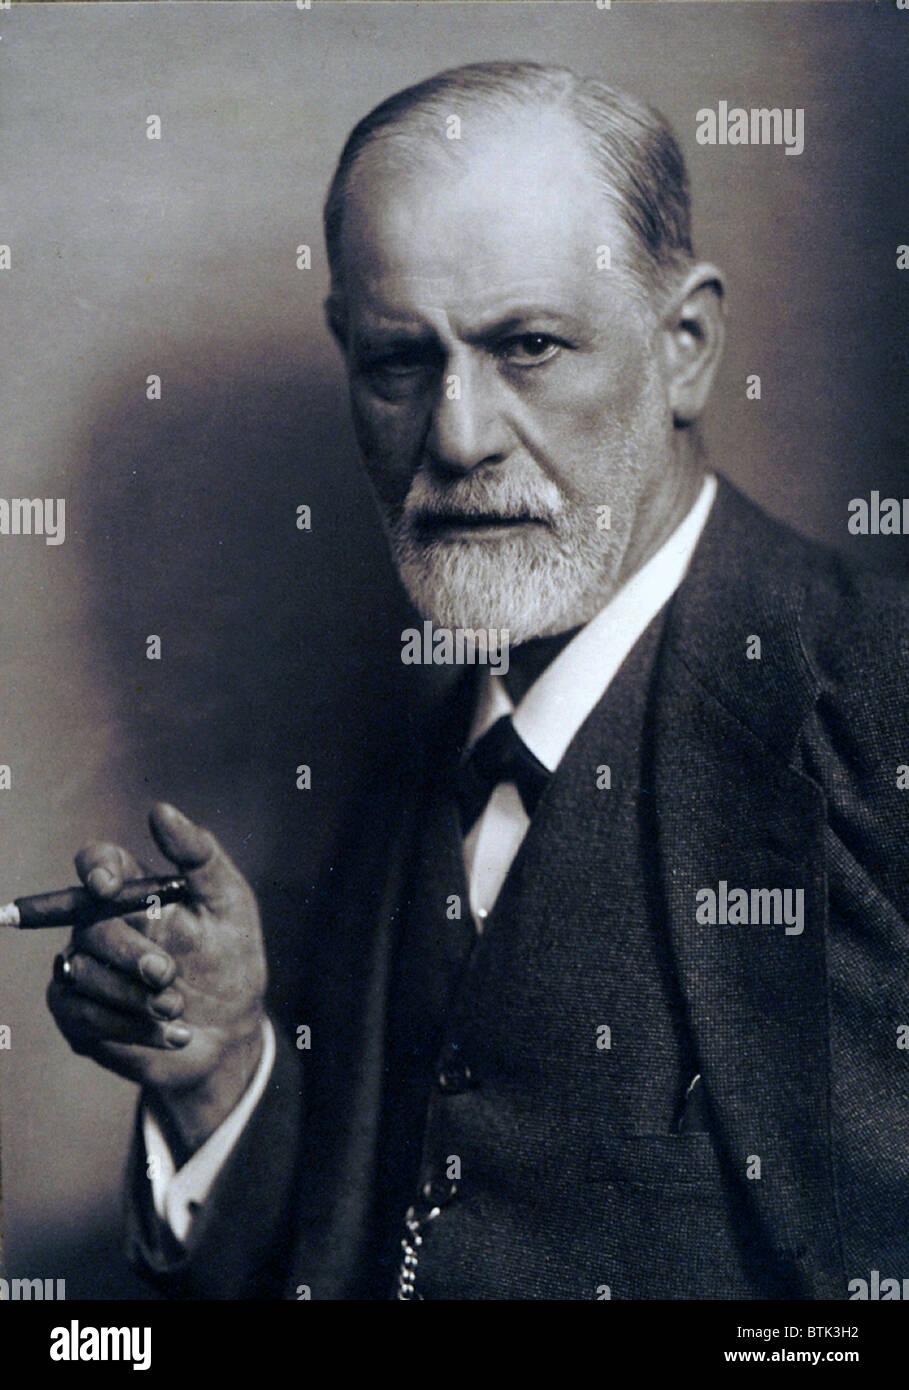 Sigmund Freud (1856-1939) smoking cigar in a classic early 1920s portrait. Stock Photo